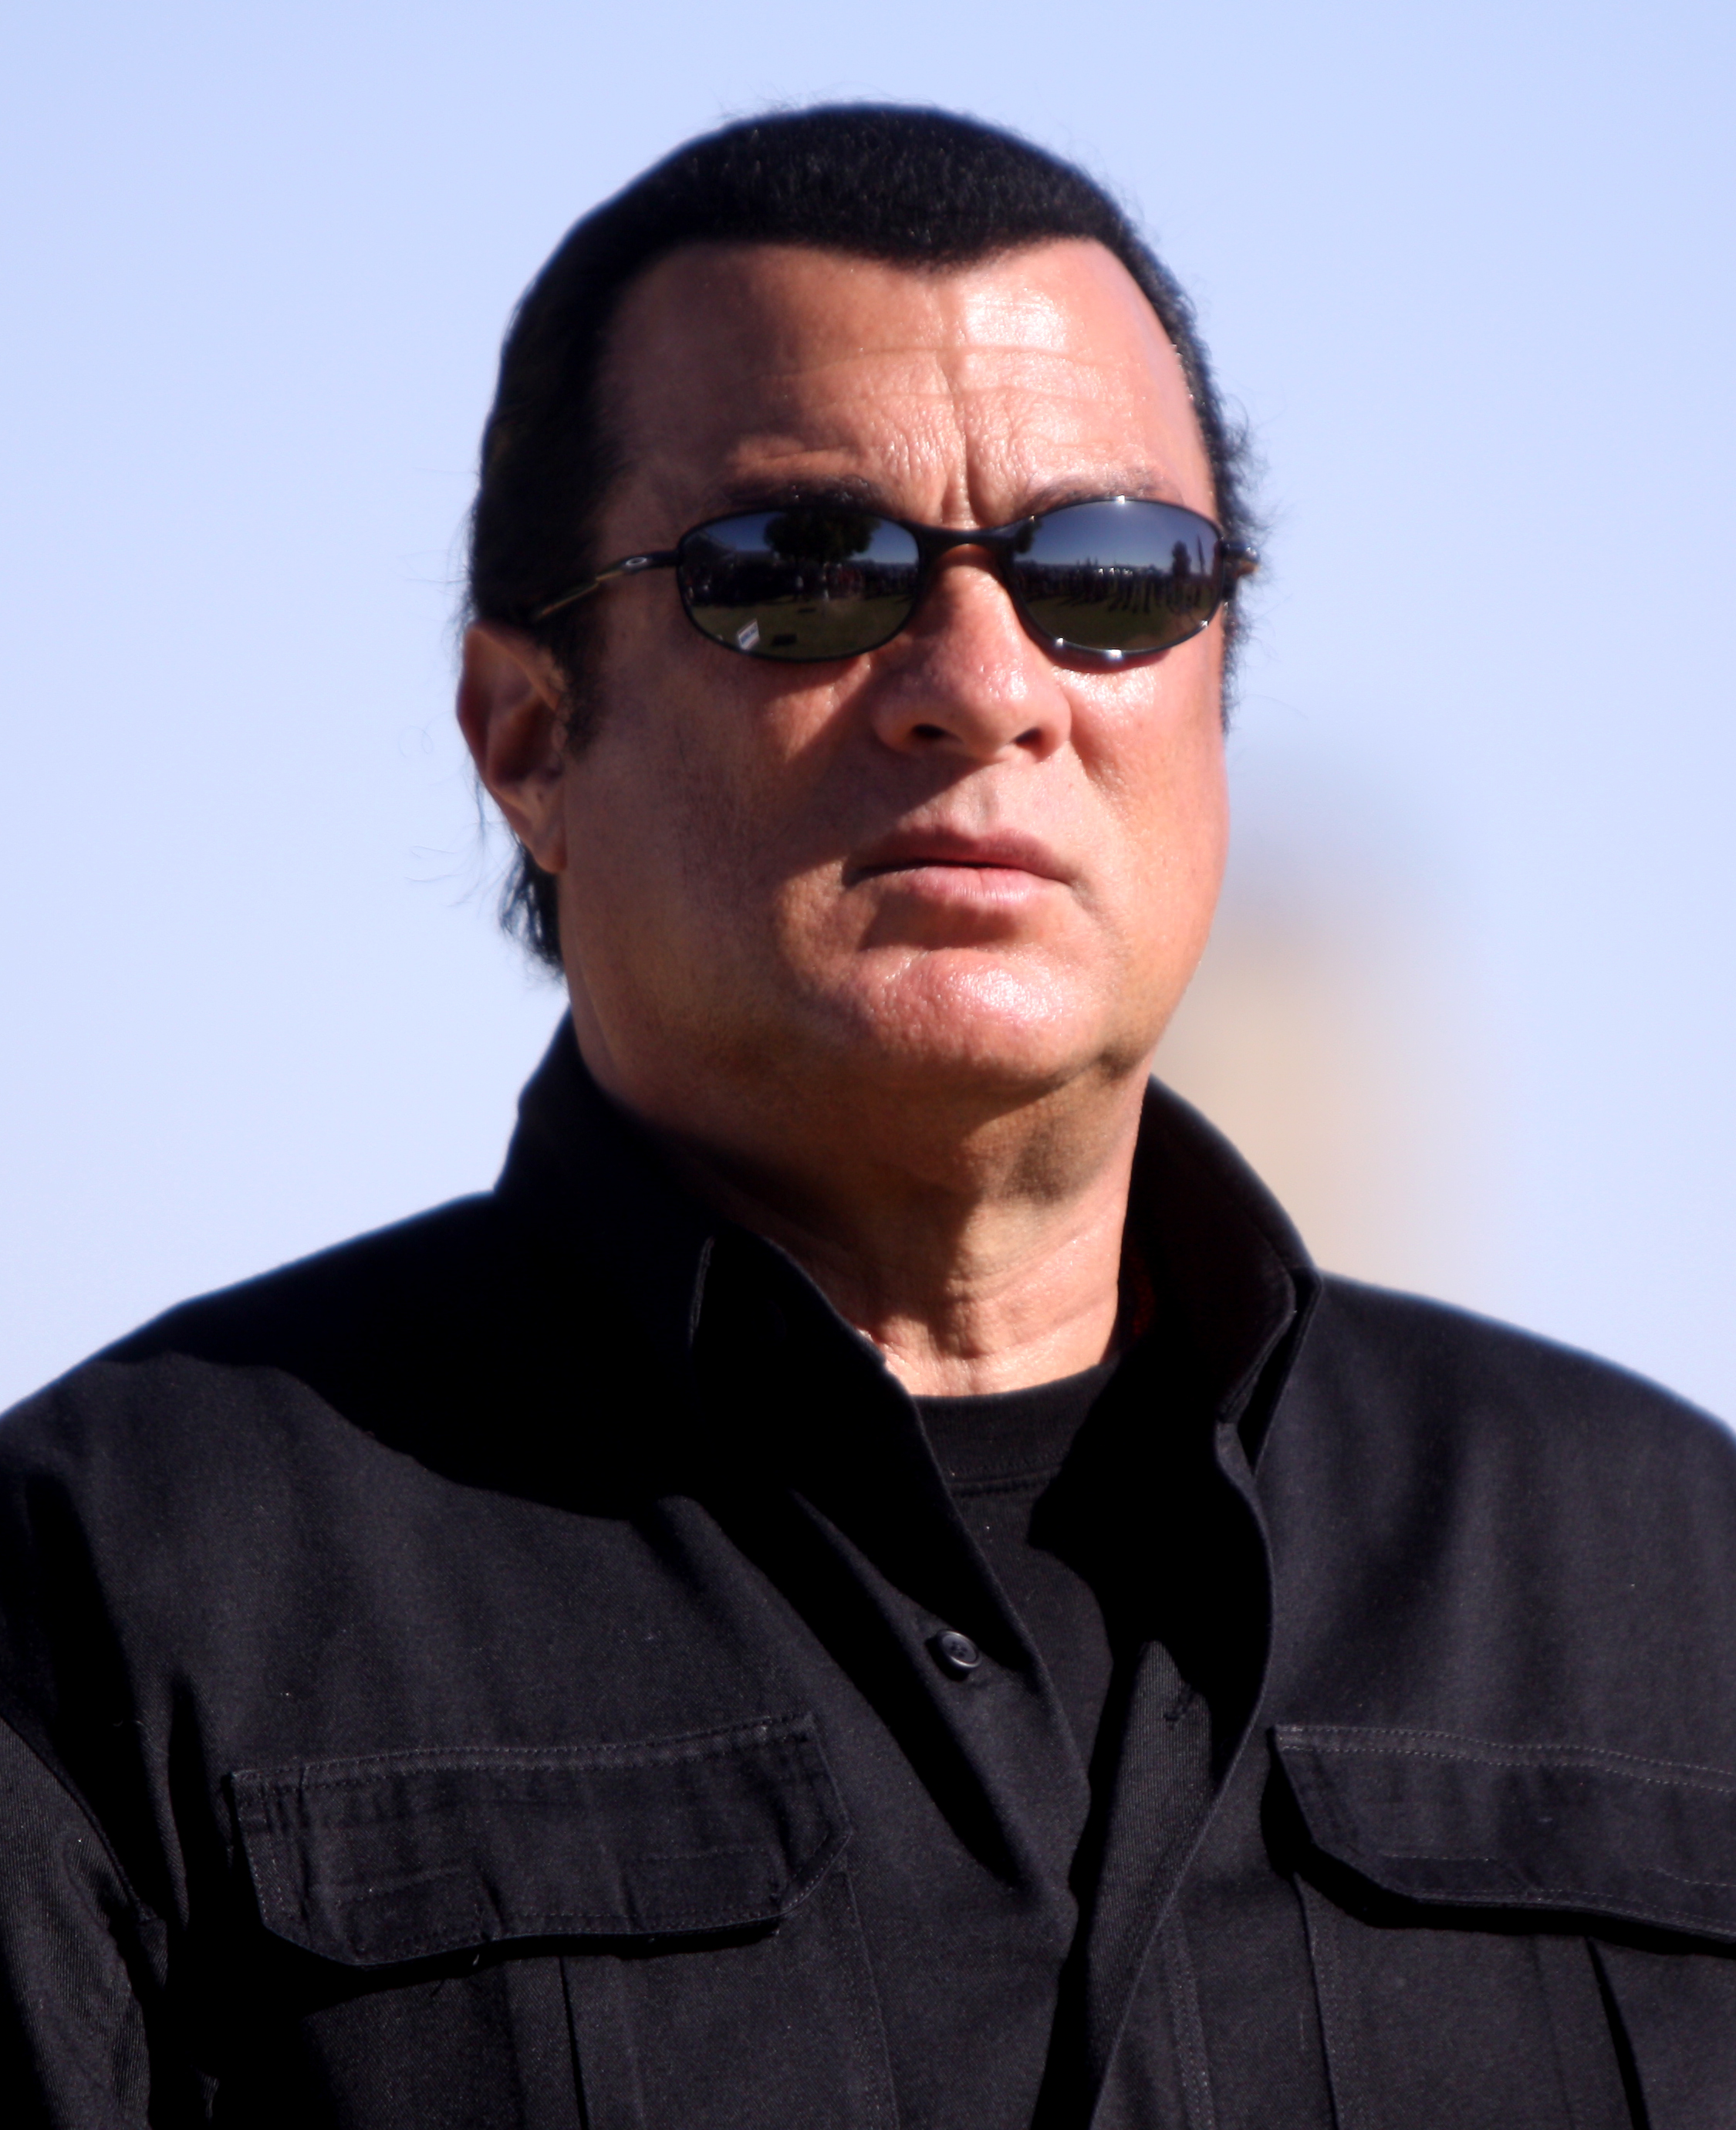 File:Steven Seagal by ...